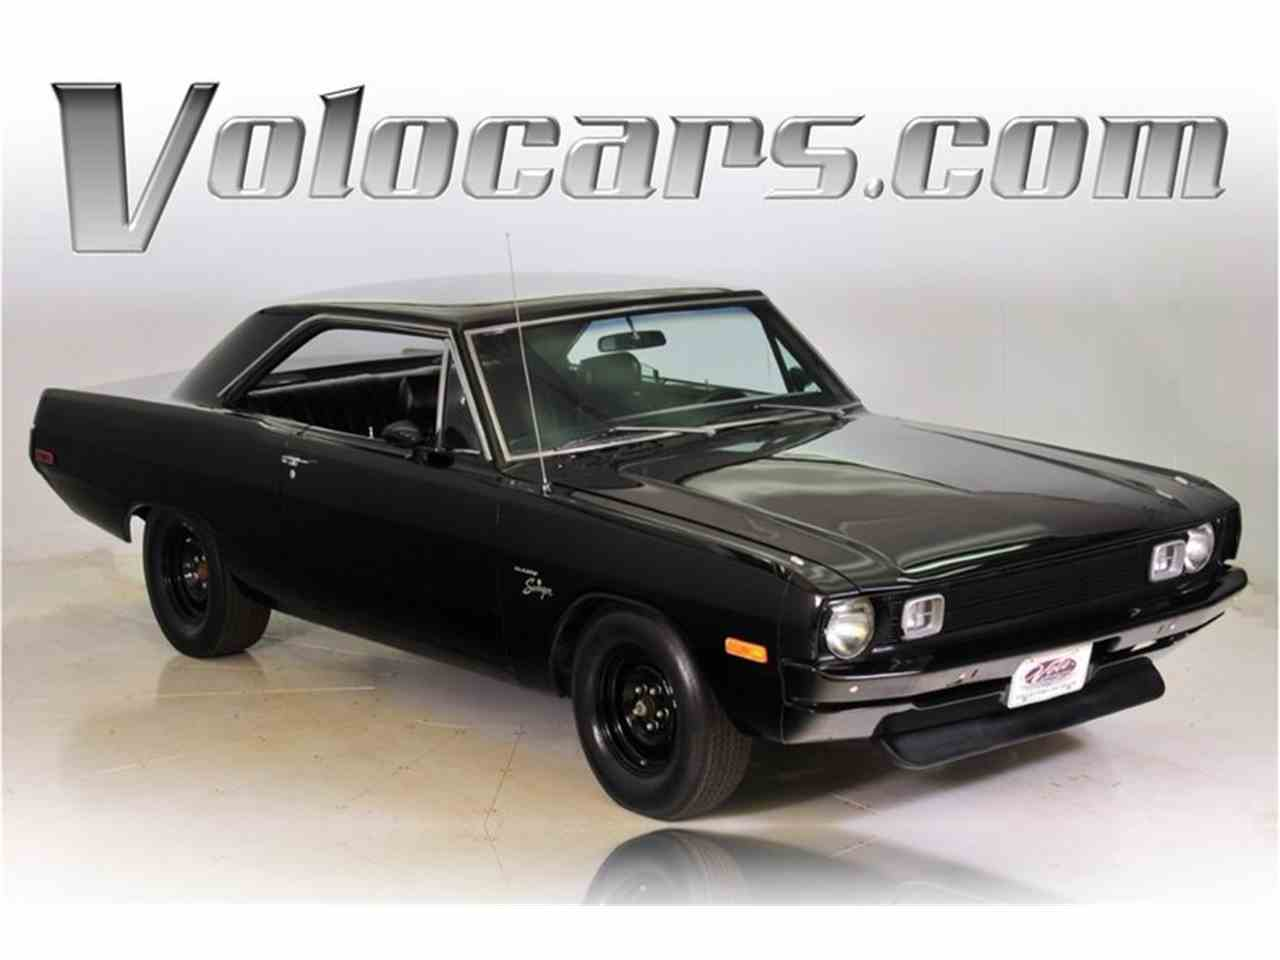 1972 dodge dart images galleries with a bite. Black Bedroom Furniture Sets. Home Design Ideas